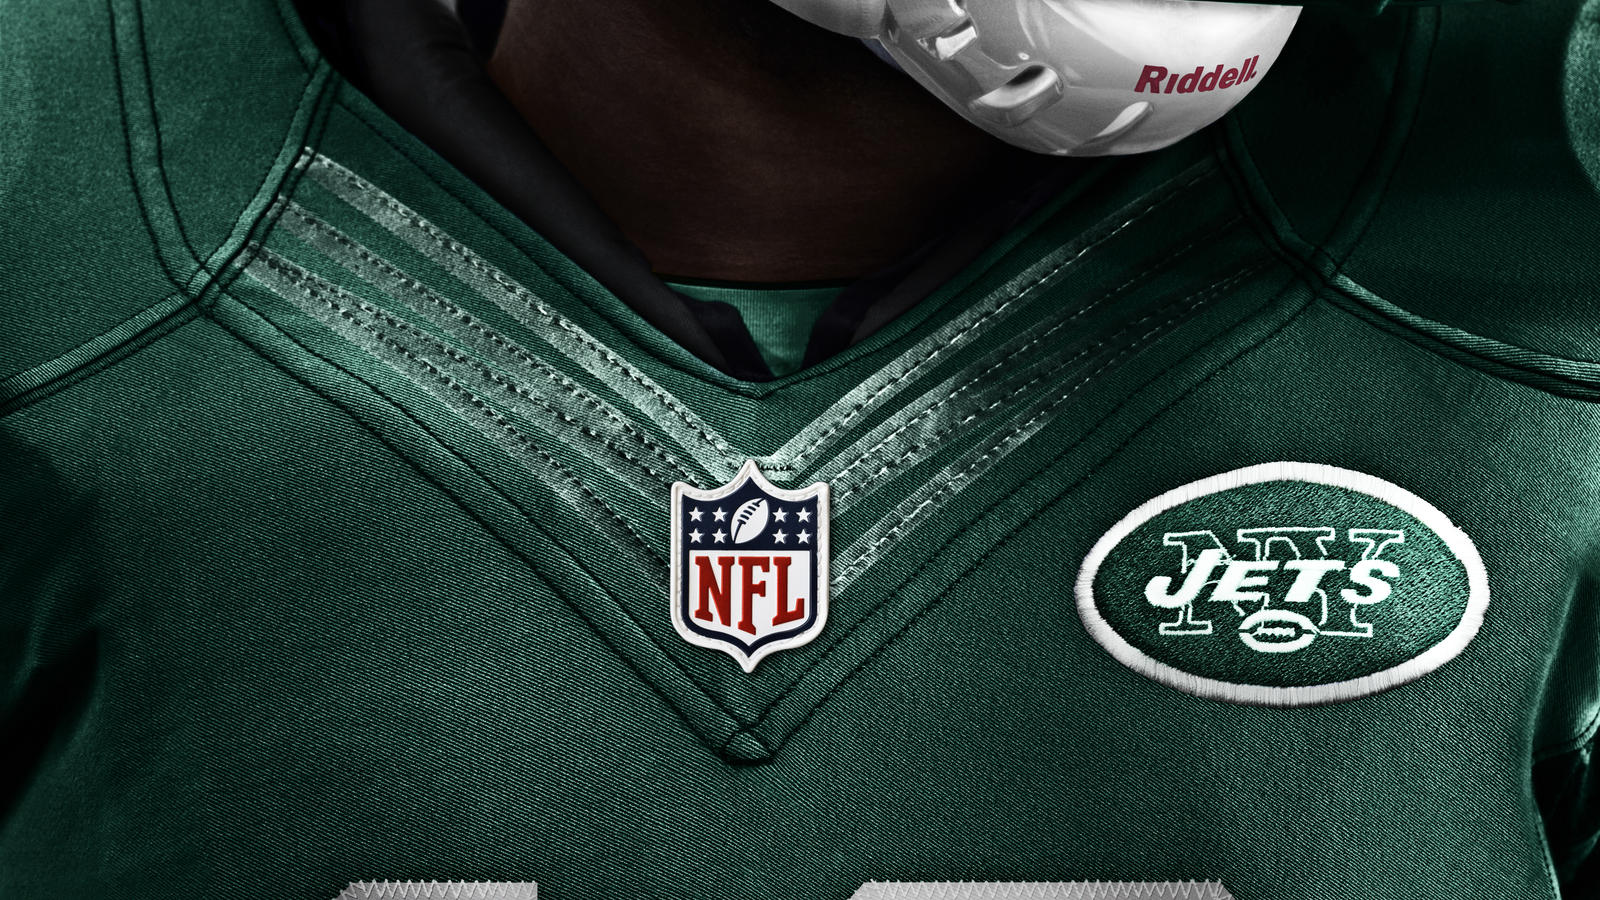 SU12_AT_NFL_UNIFORM_FLYWIRE_JETS